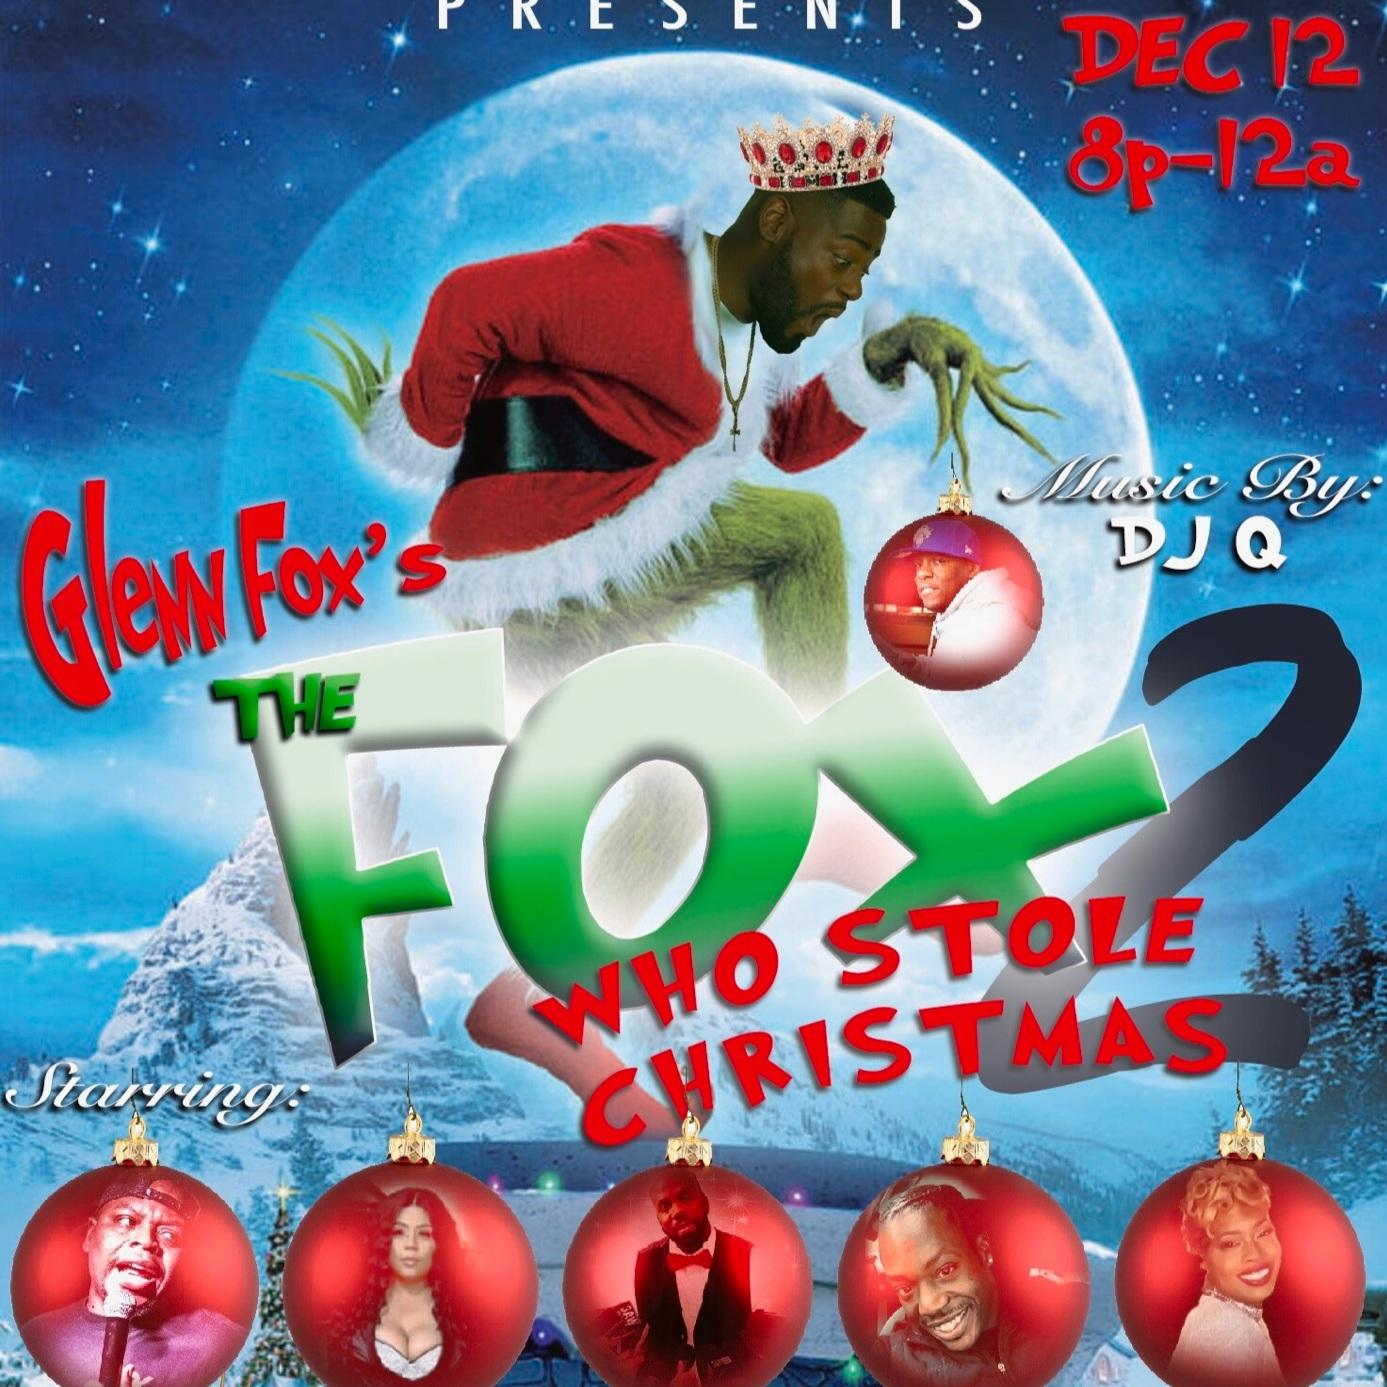 The Fox that Stole Christmas 2 Comedy Show   12 DEC 2020